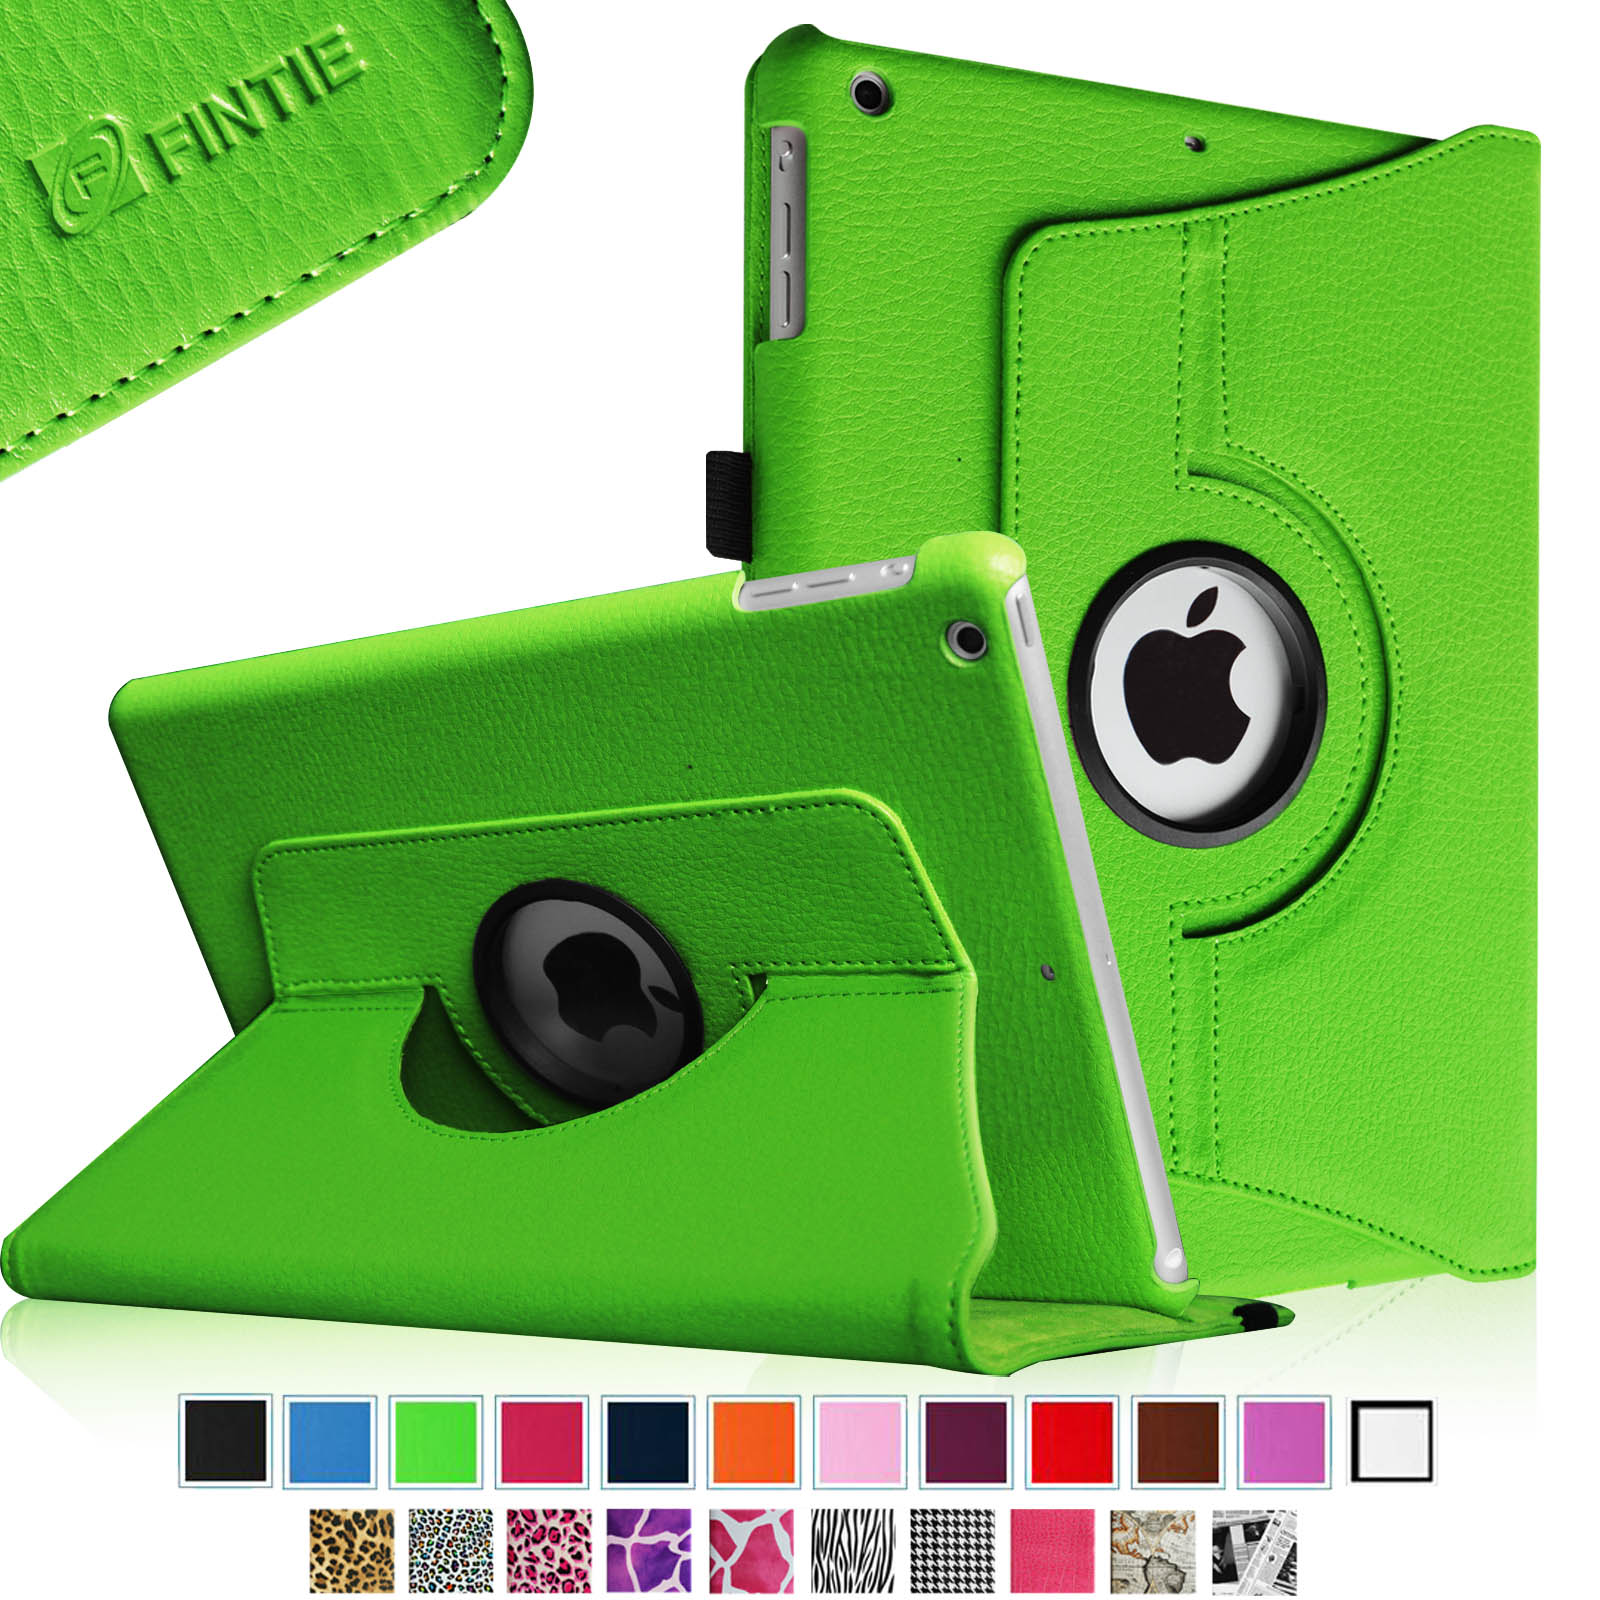 Fintie iPad Air Multiple Angles Stand Case Cover with Auto Sleep Wake, Green